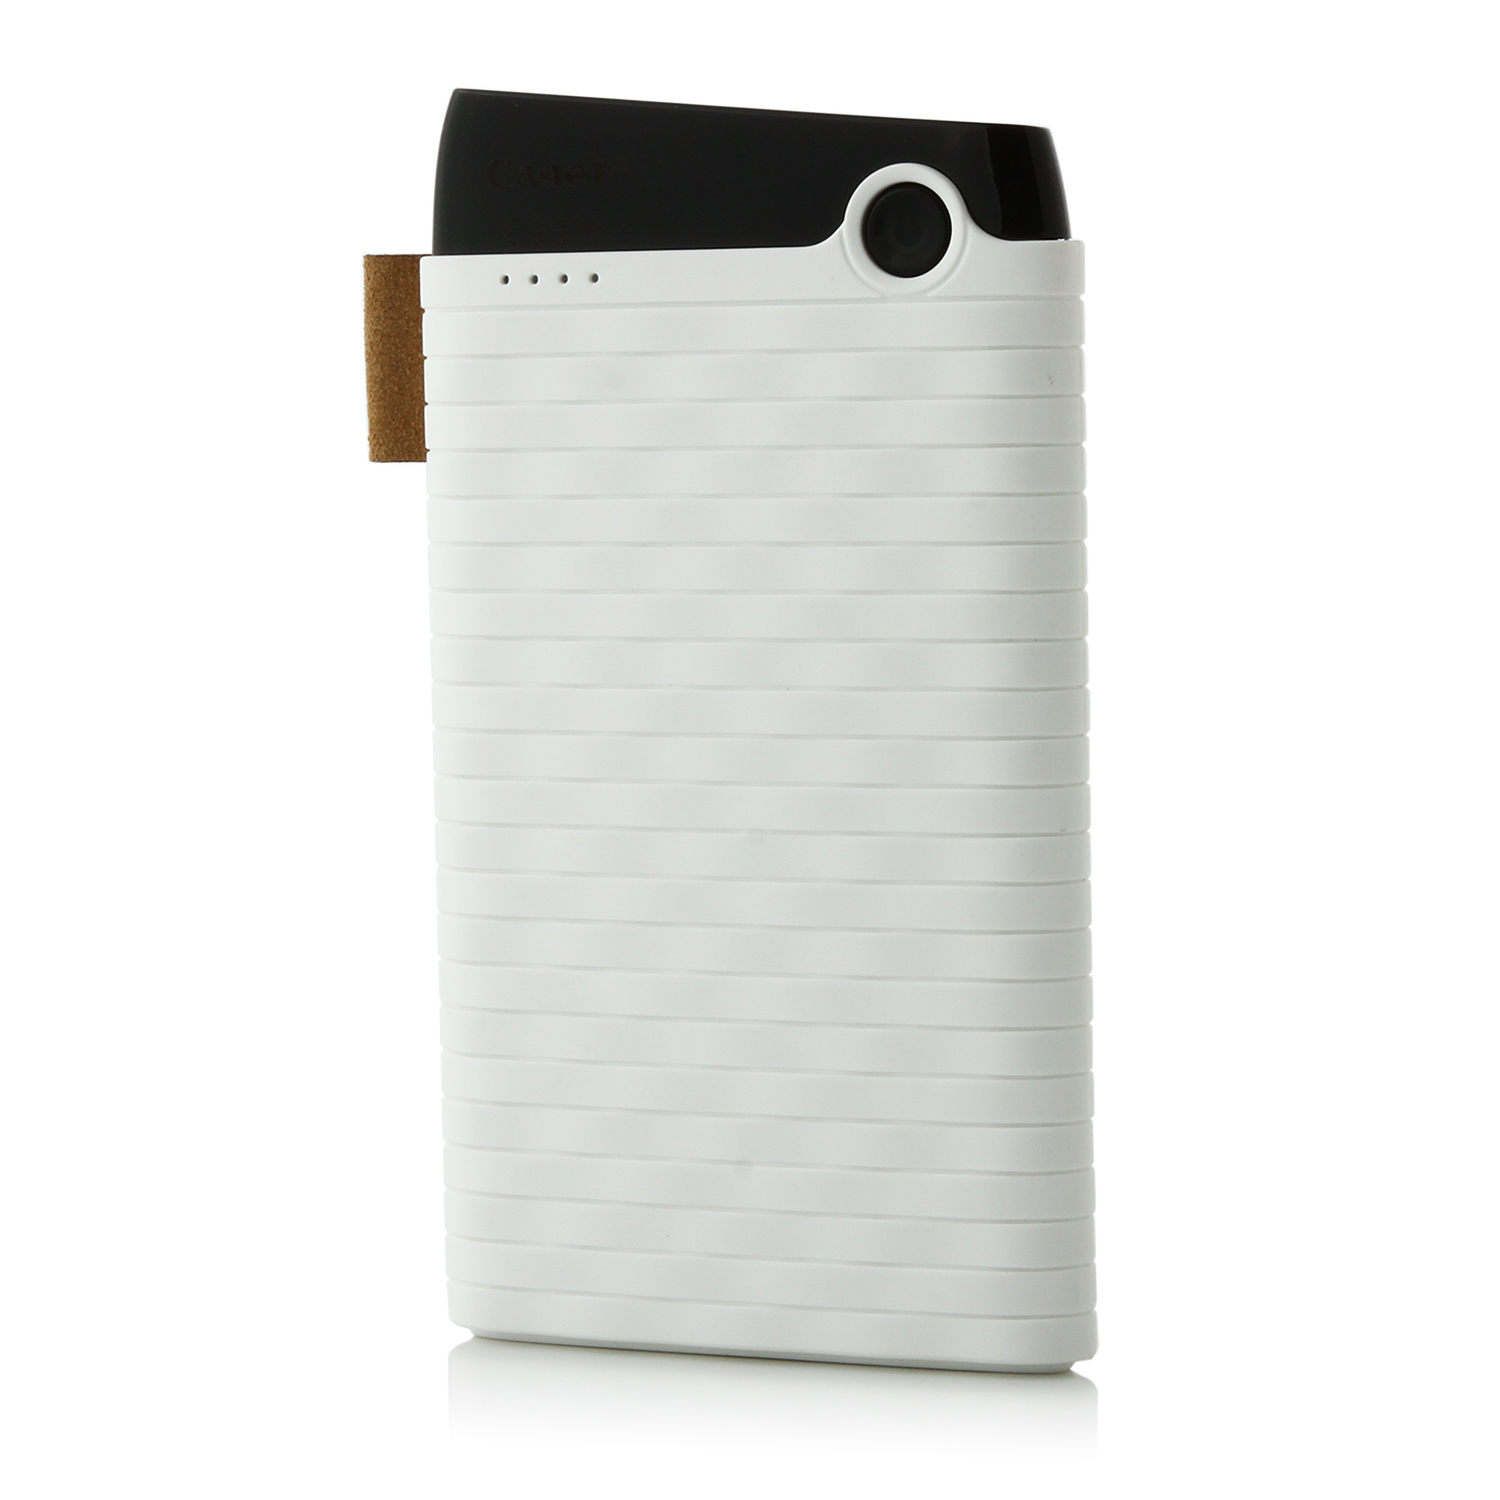 Cager B089 6000mAh Ultra Slim USB Power Bank for Smartphones Tablet PC White